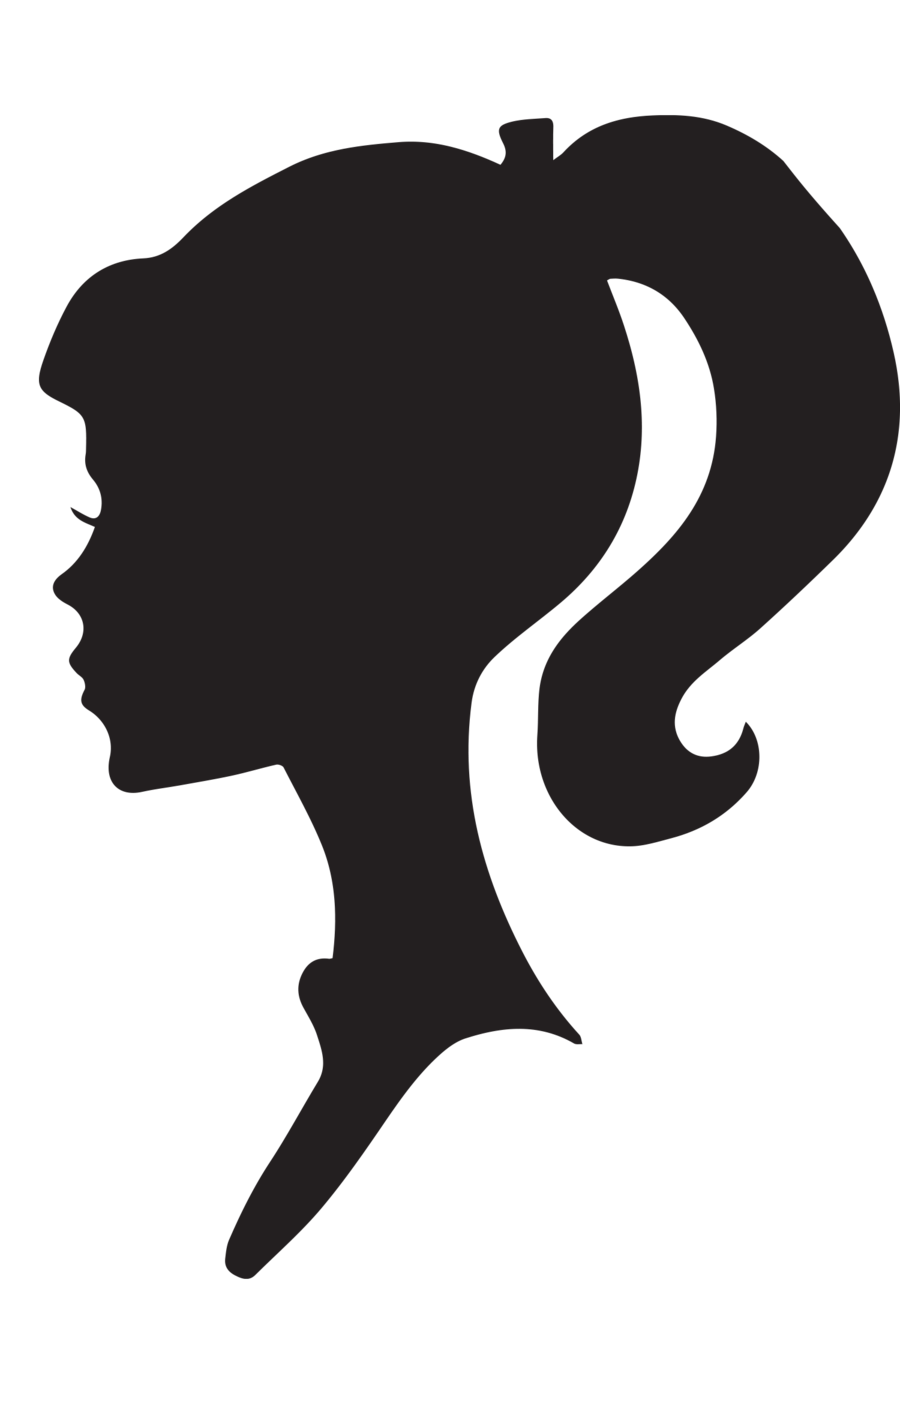 Female Silhouette Profile by snicklefritz.